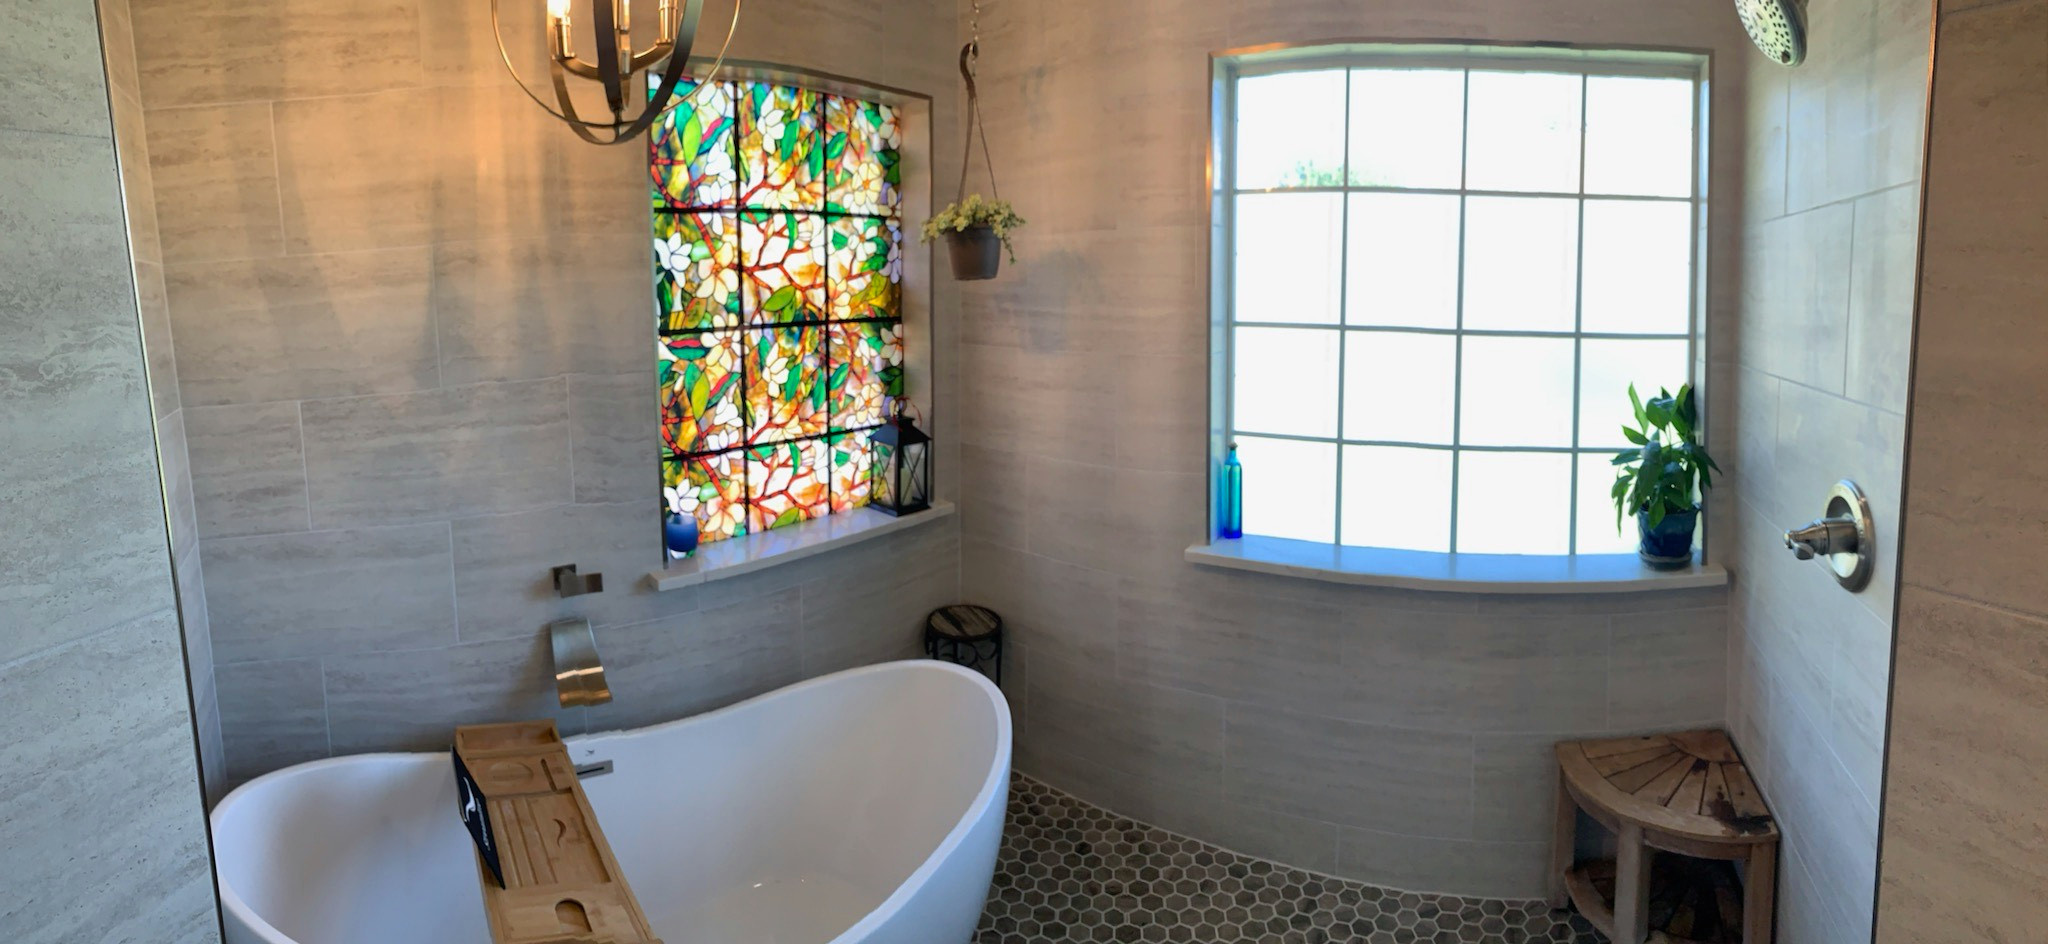 Master Bath with Stunning Feature Window